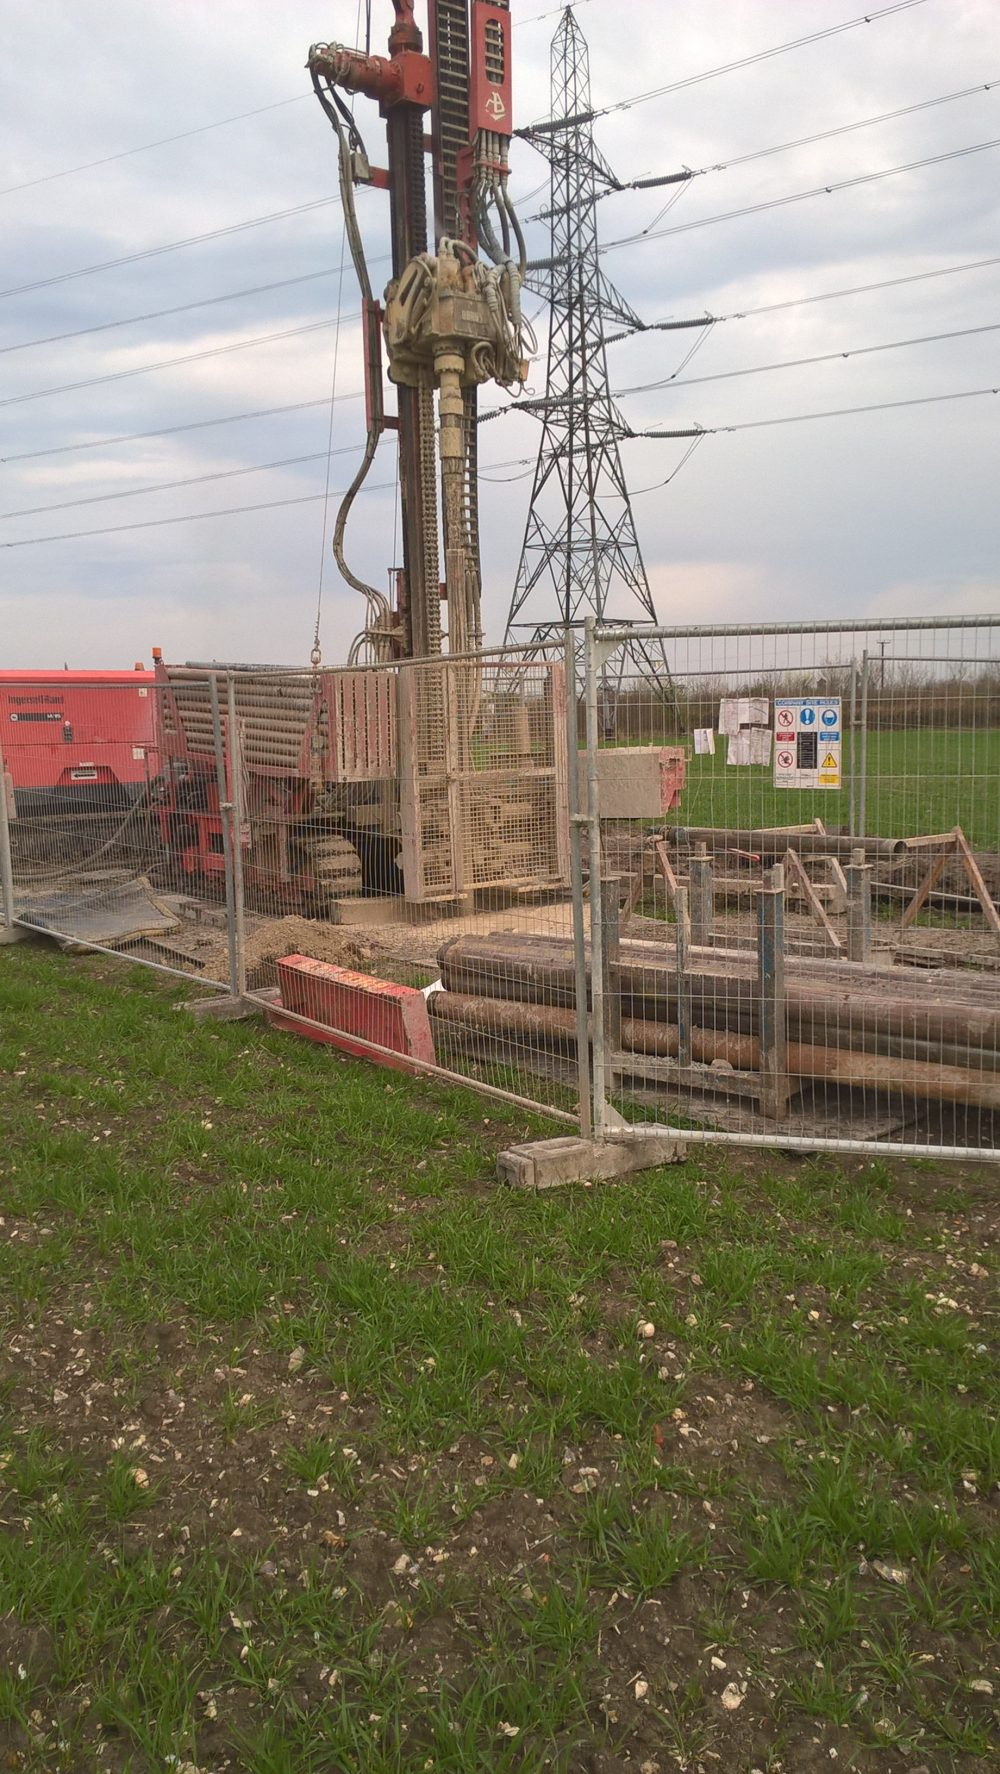 Geotechnical Engineering Services goes form strength to strength on HS2